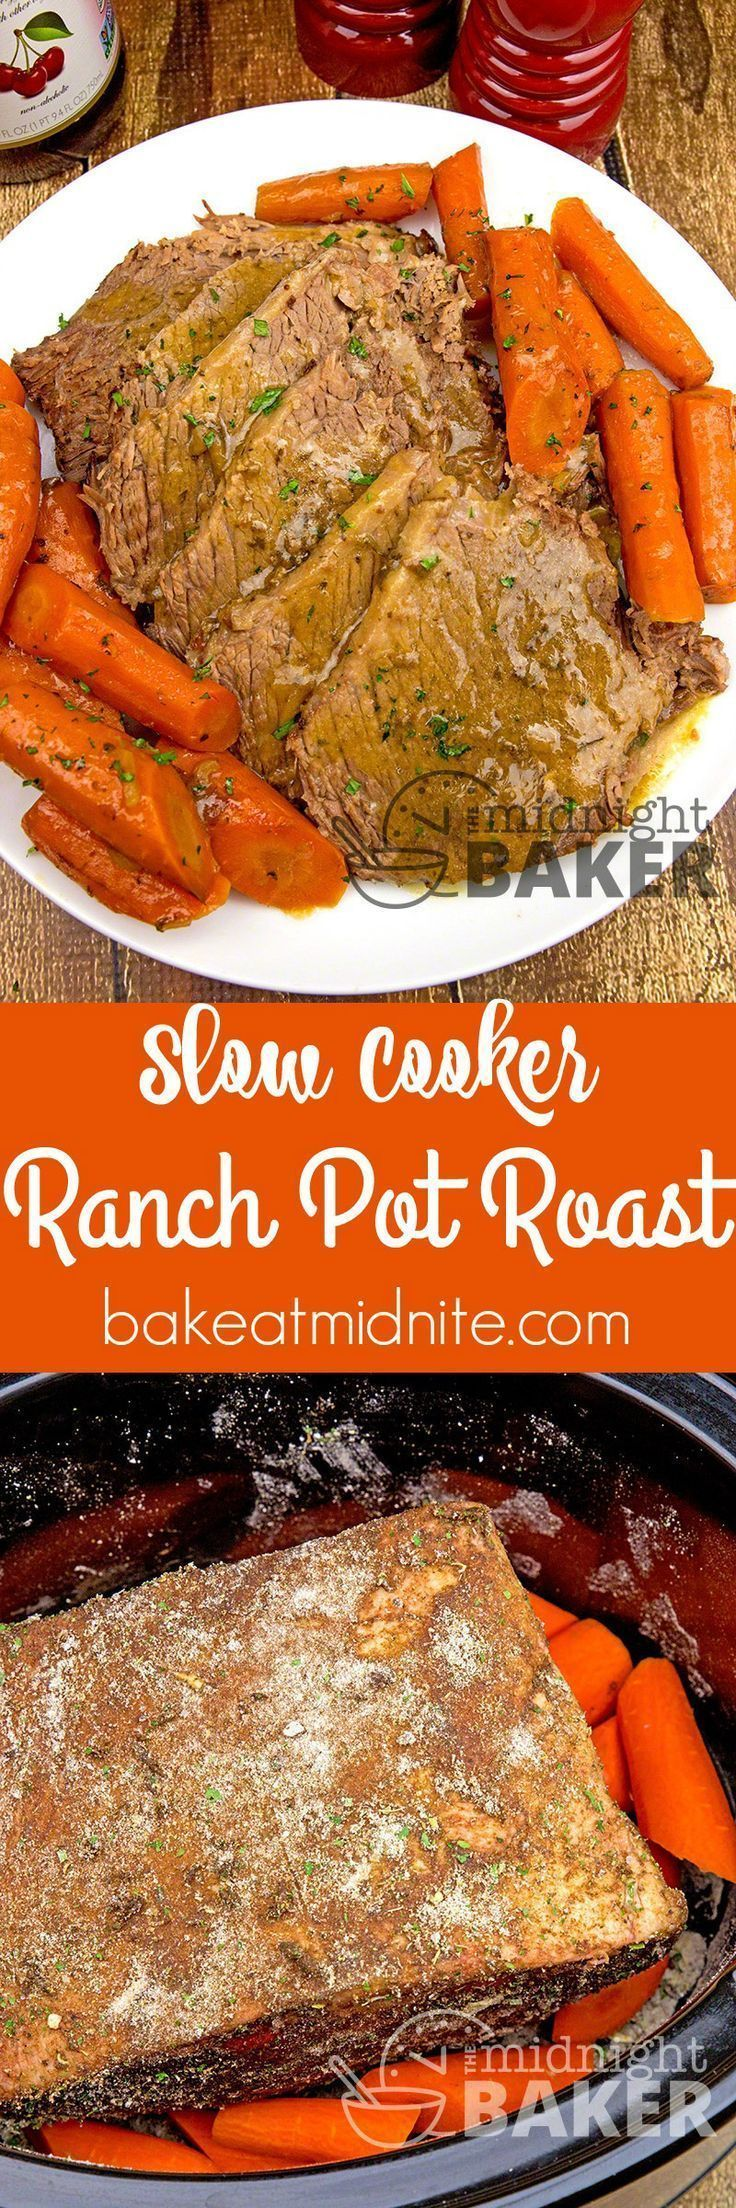 Slow cooker does all the work with this delicately ranch flavored pot roast! #easy #recipes #slowcooker #crockpot #slowcookercrockpots